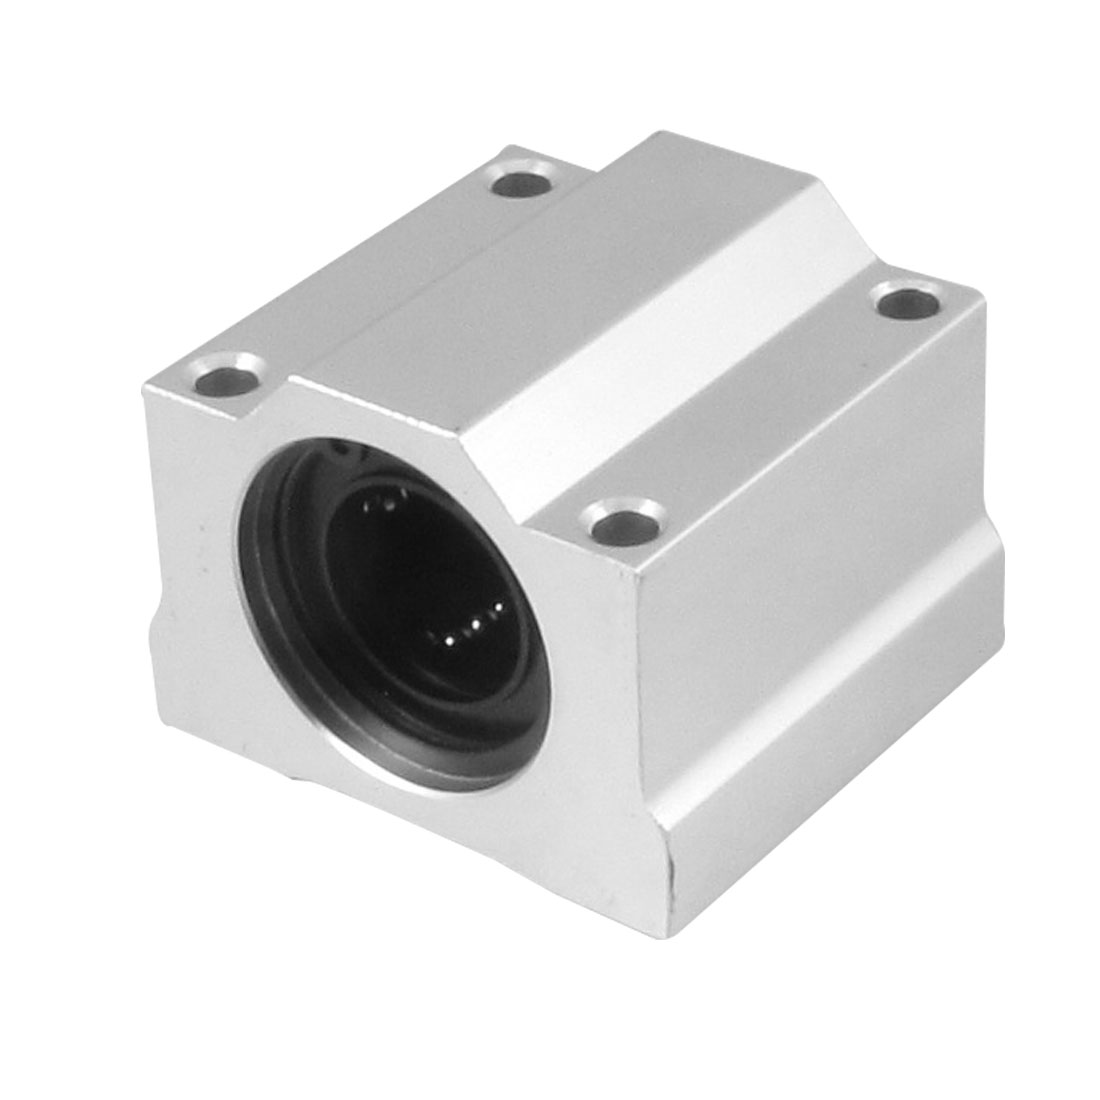 LM20UU 20mm Linear Motion Ball Bearing Slide Bushing